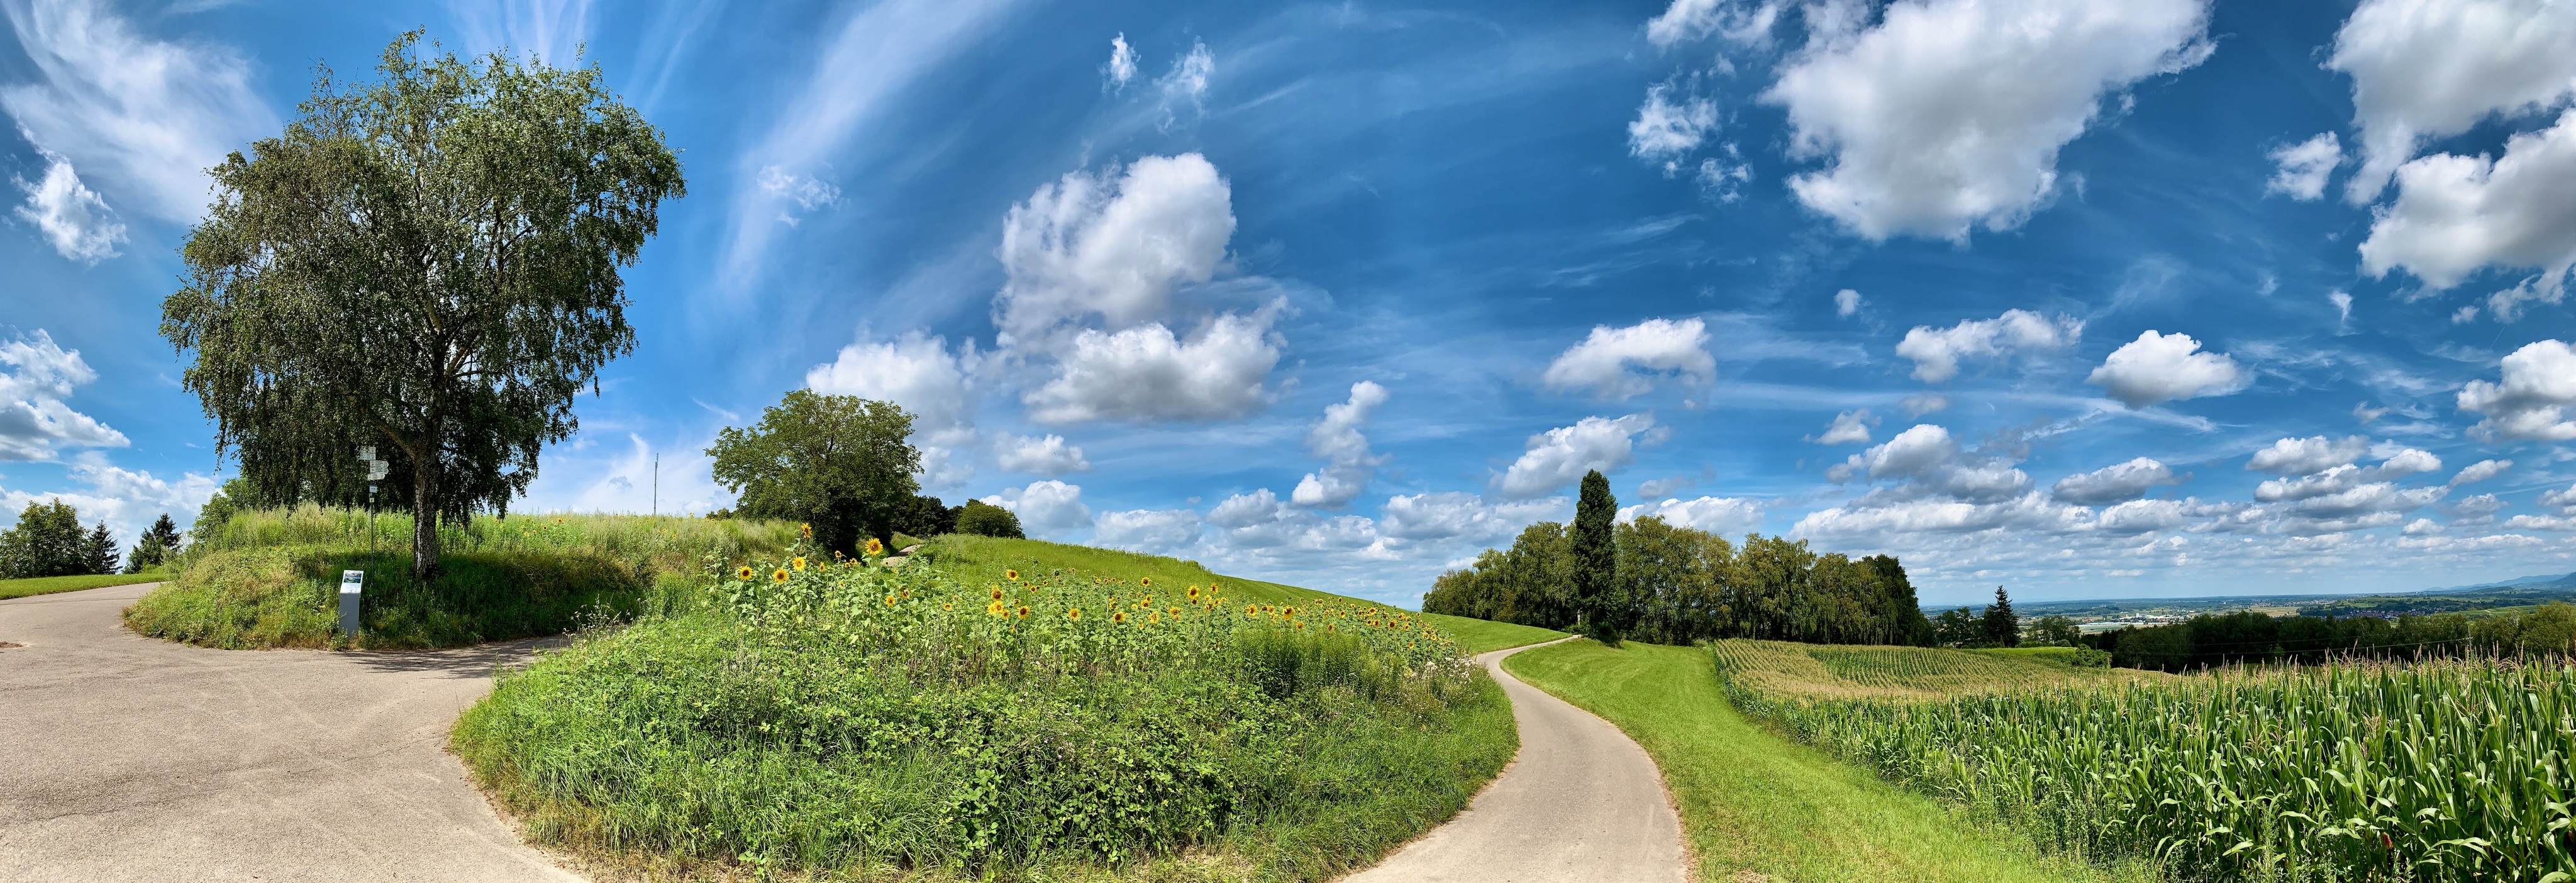 Lahr 2021, Panoramics from the Hill (3)